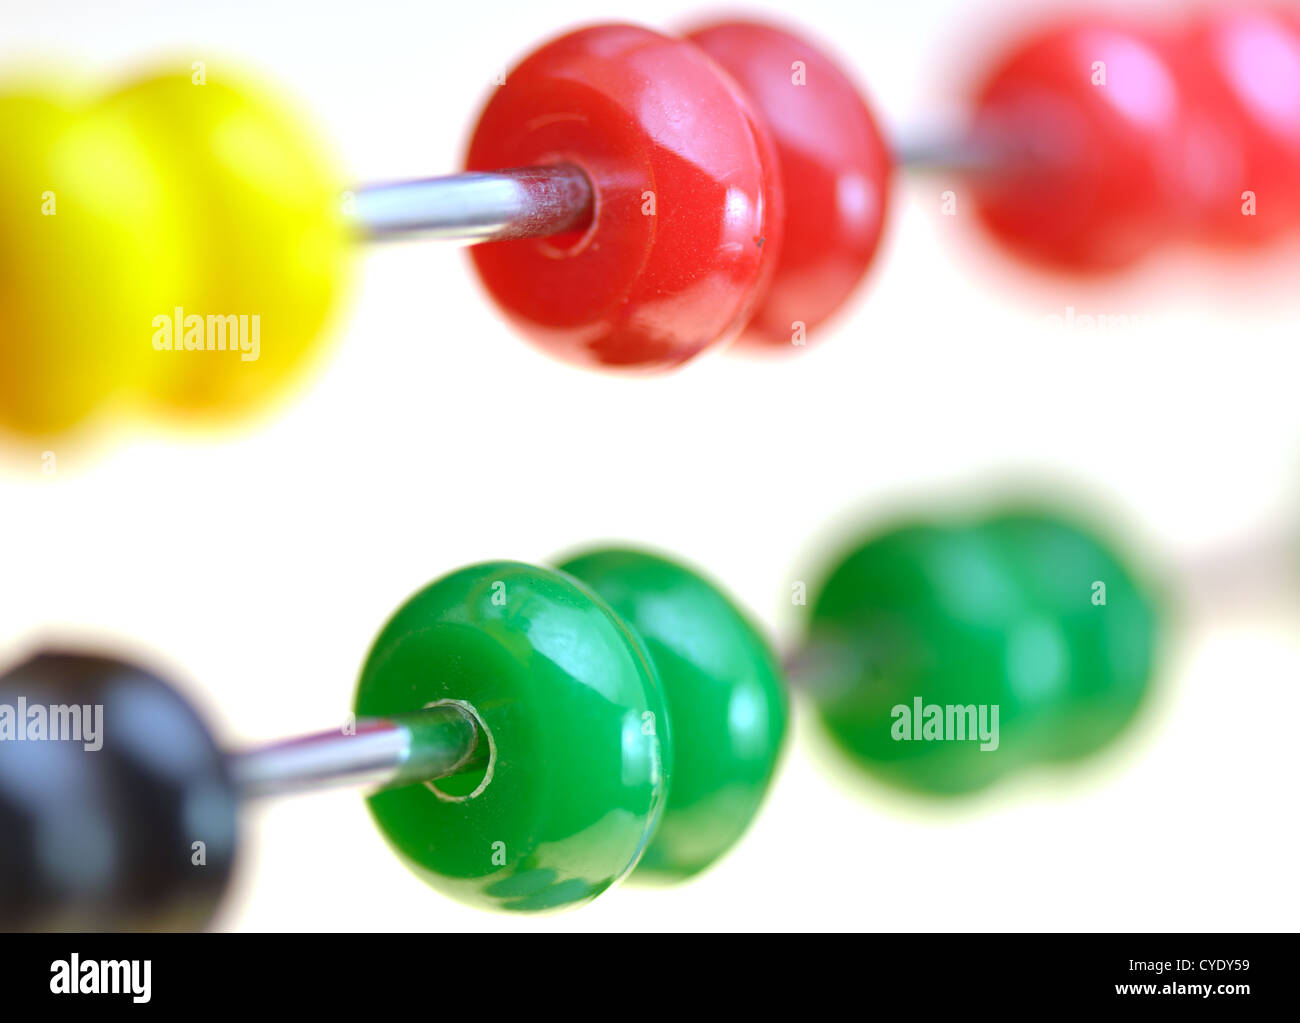 abacus - Stock Image